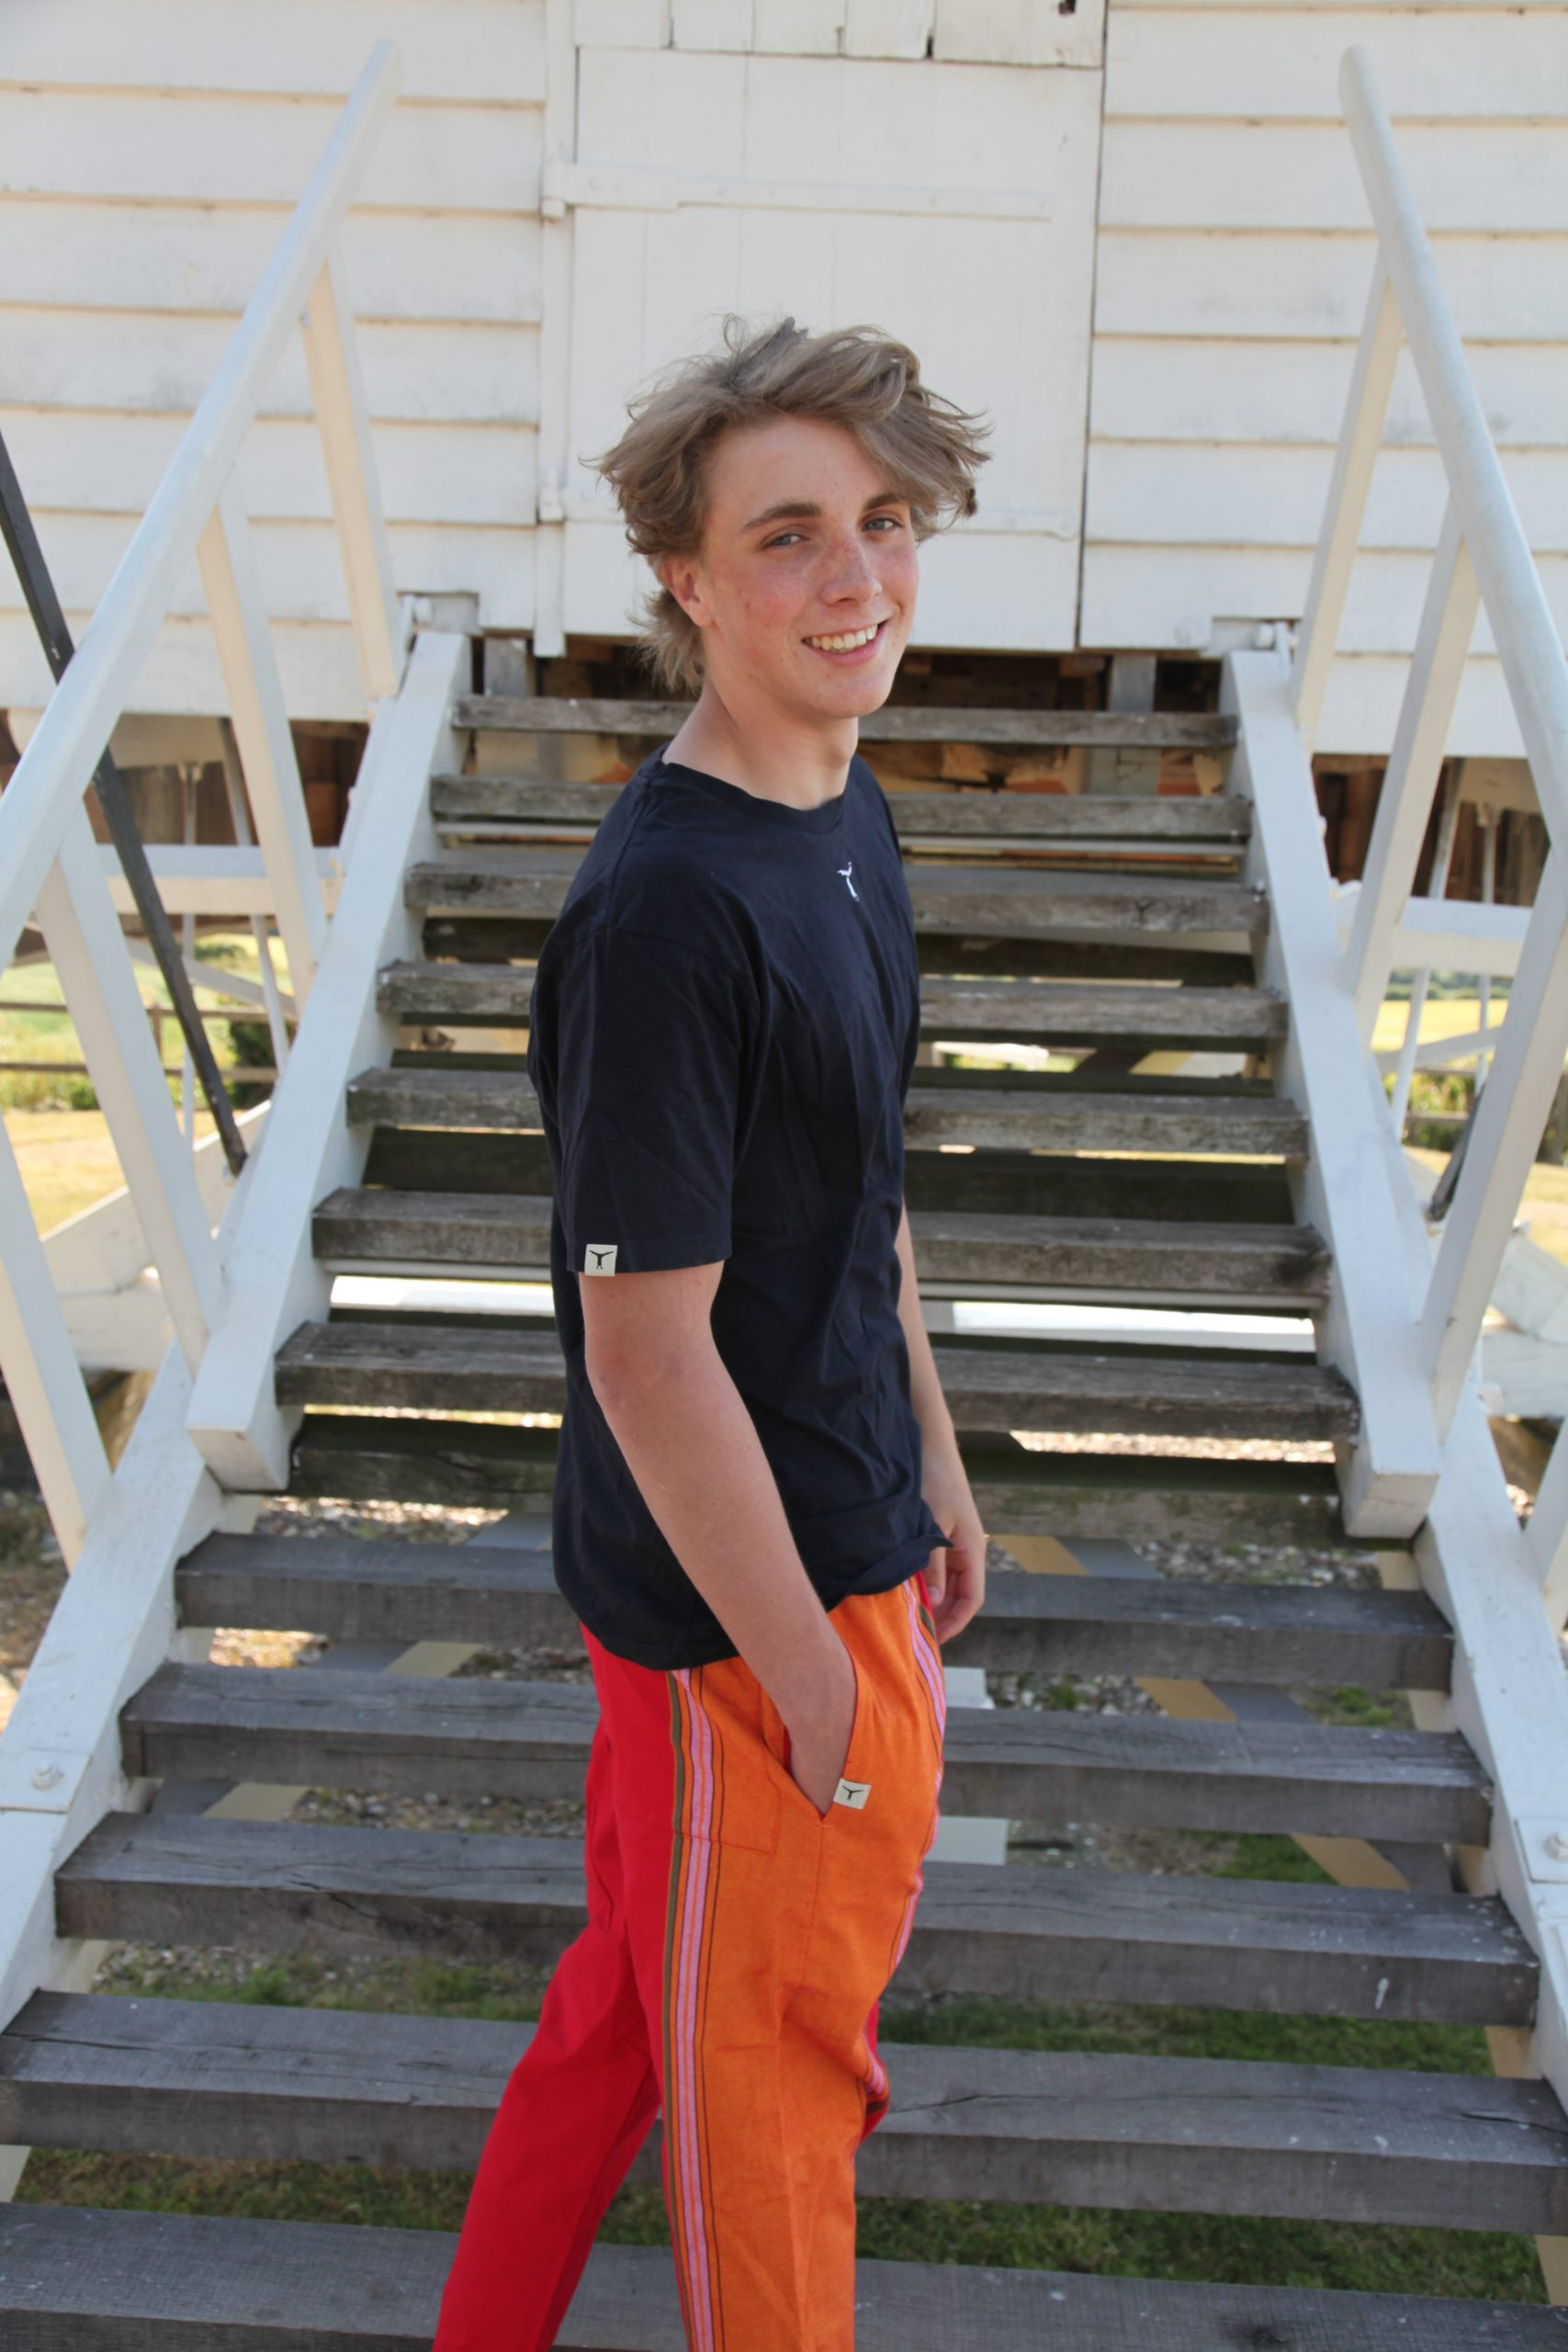 Smiling young man standing in profile on wooden stairs wearing a black t-shirt and colorful kikoy yoga pants